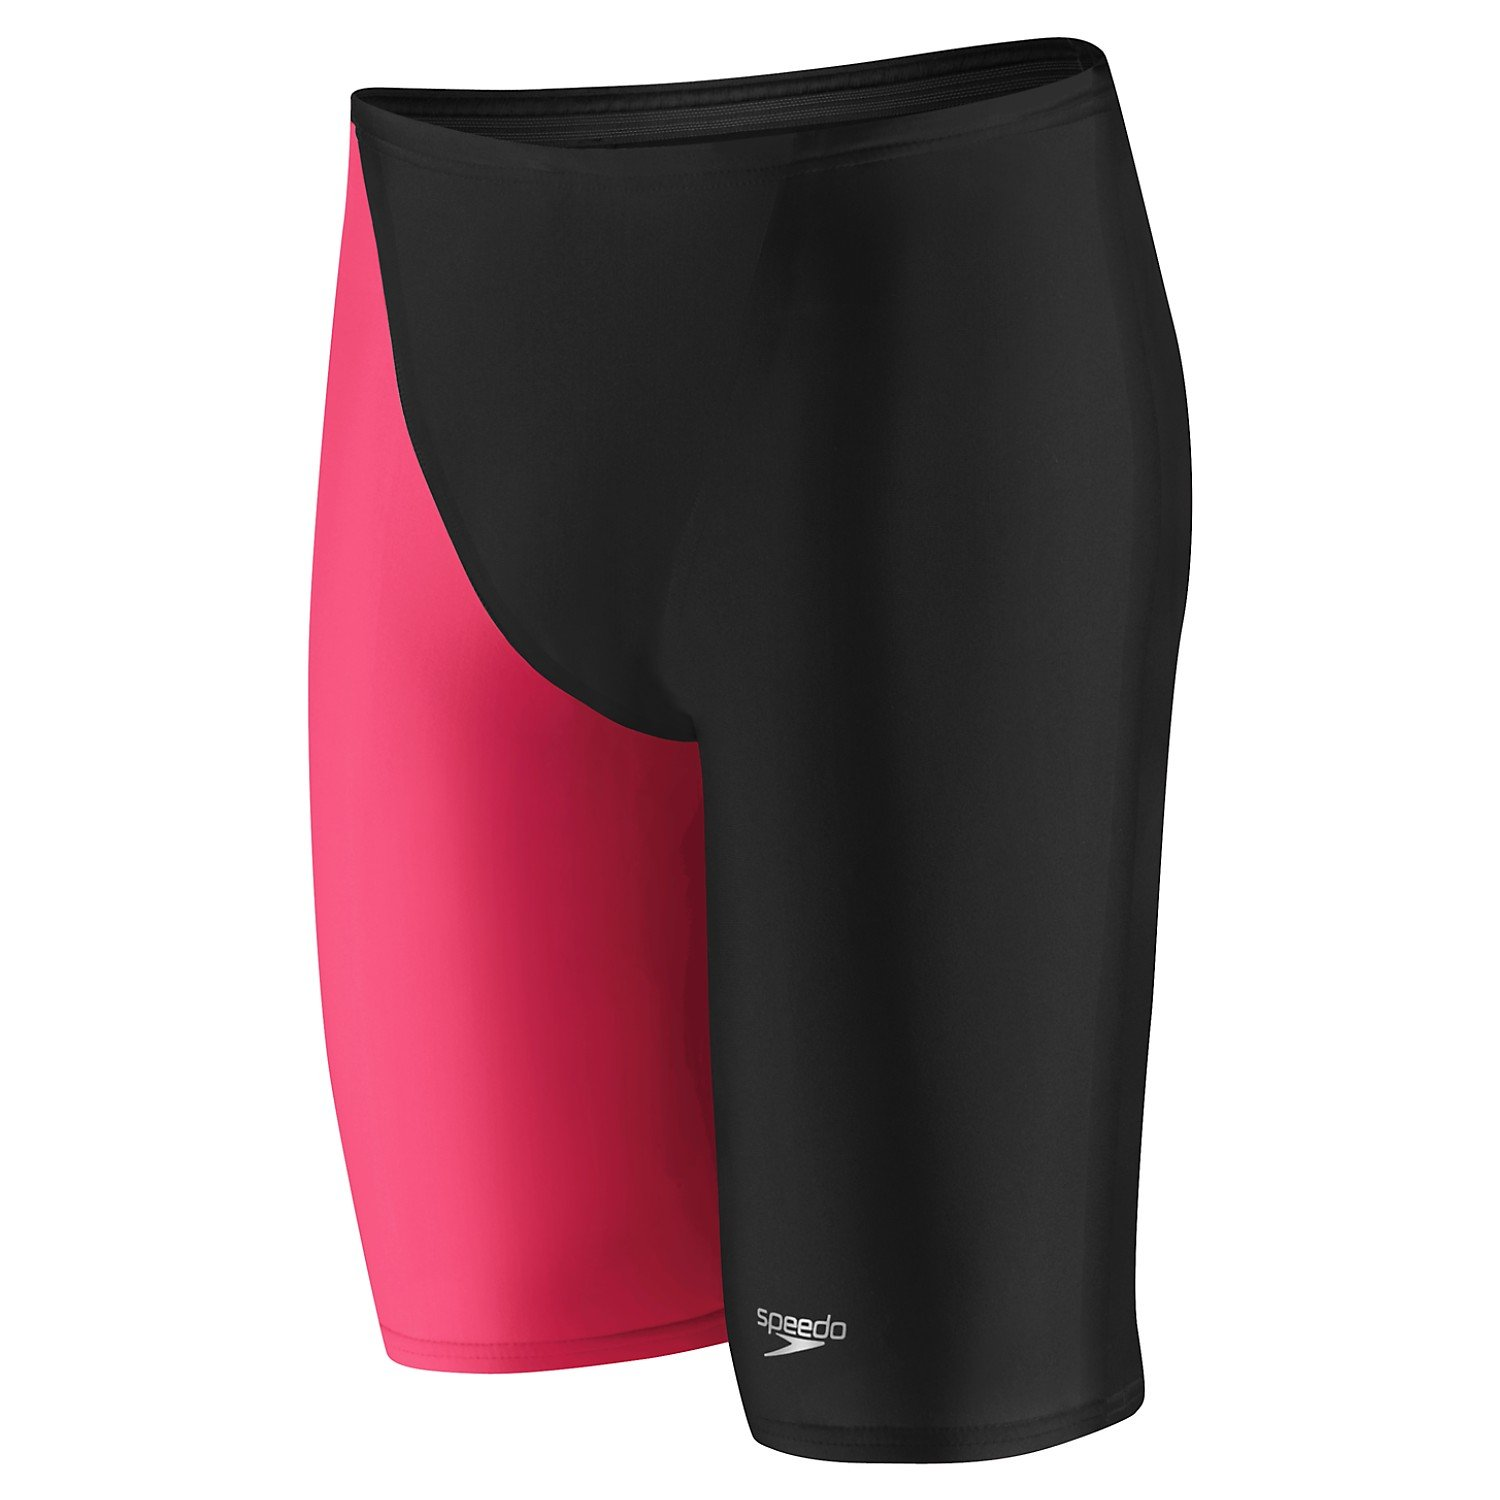 Speedo LZR Elite 2 High Waist Jammer,Hot Coral (007),27